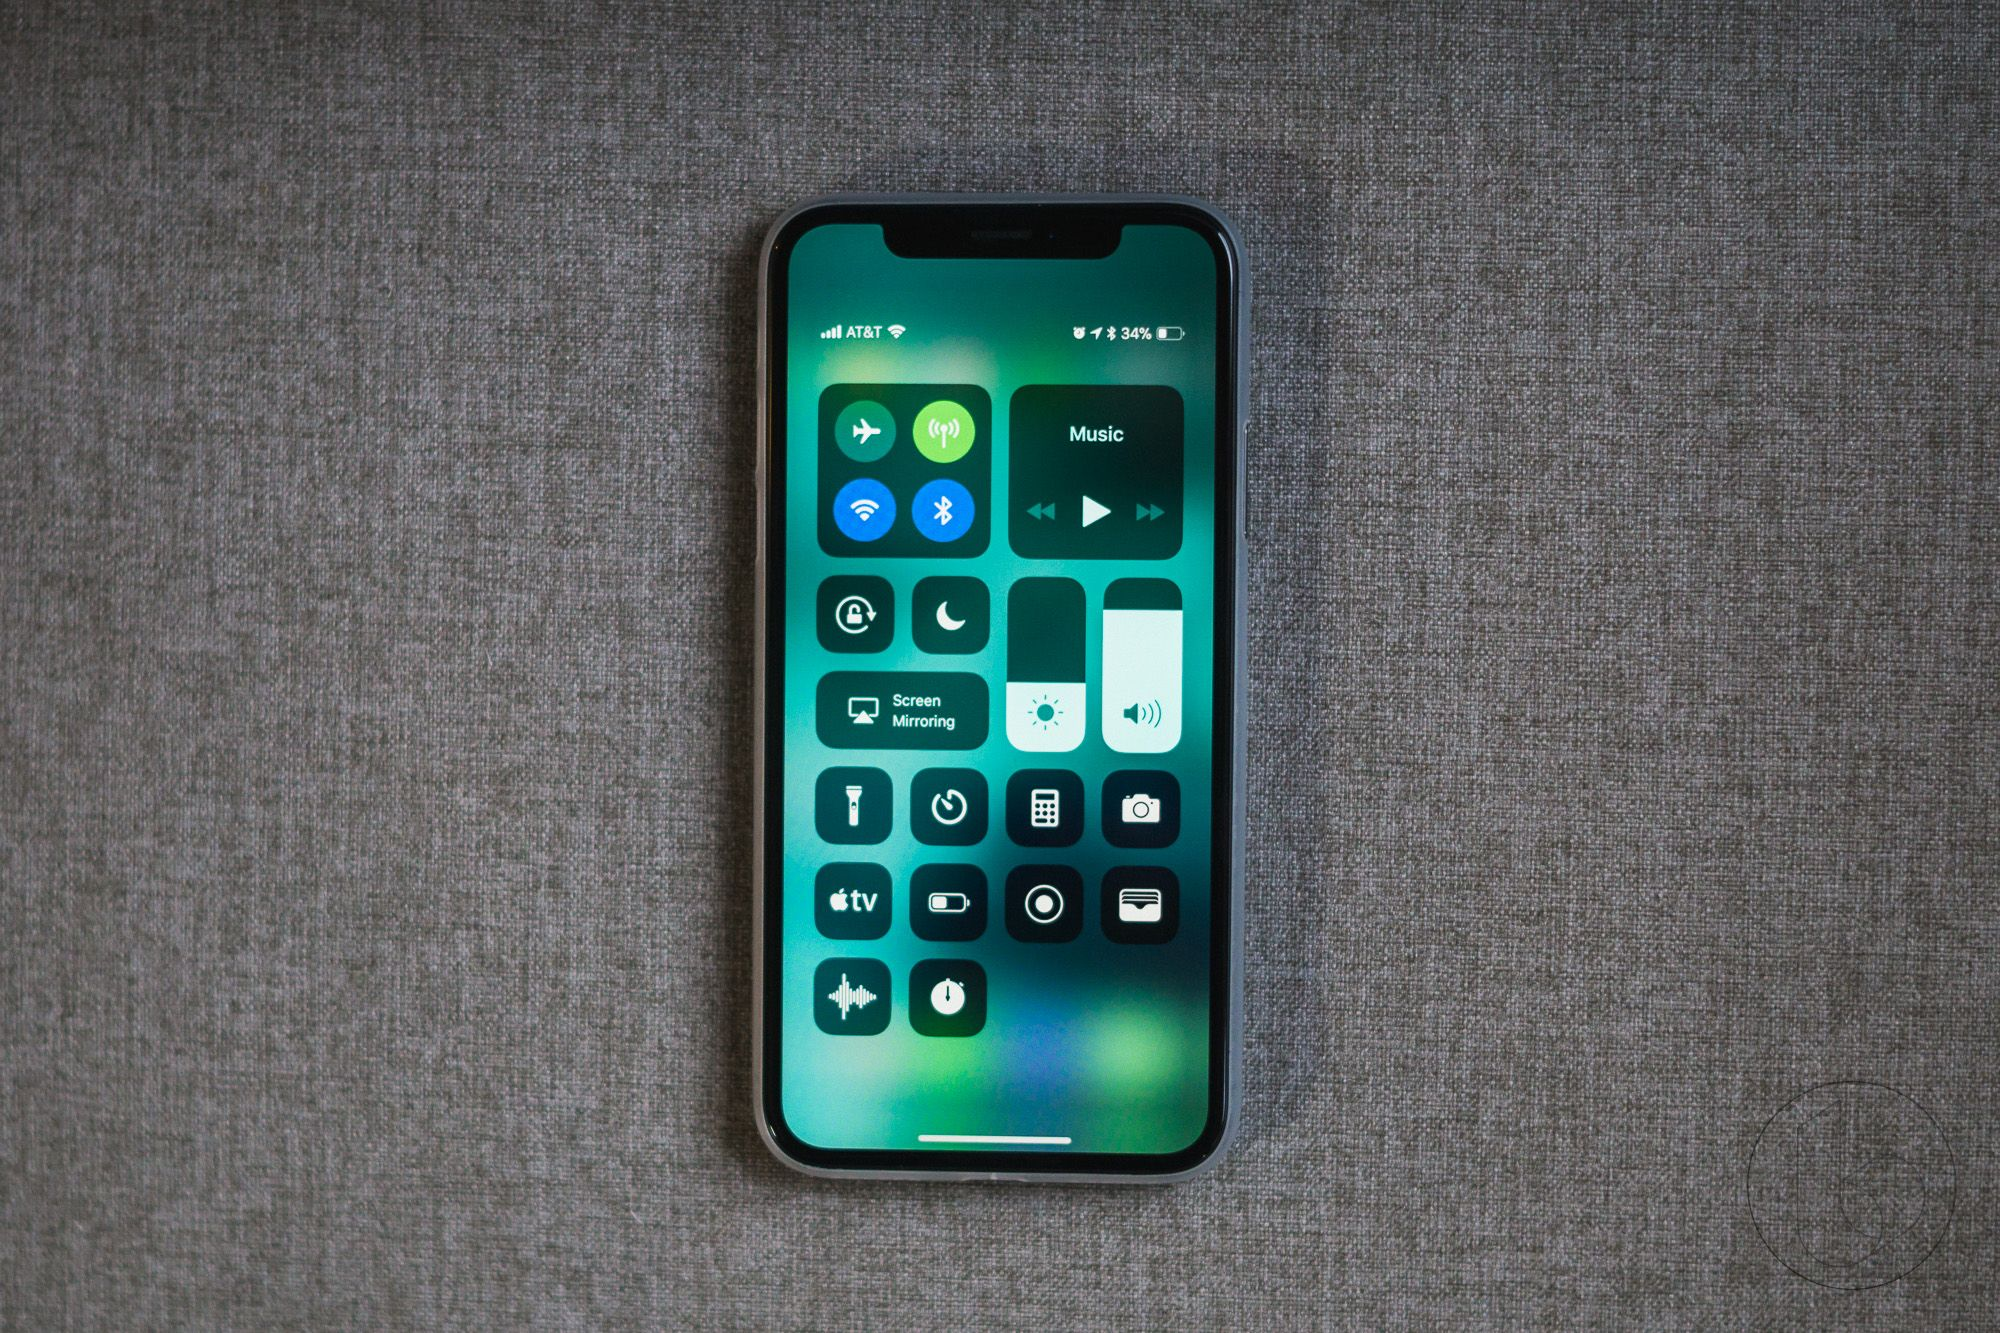 Ios 11 2 Beta 6 Released Send And Receive Money With Apple Pay Cash Ios 11 Ios Iphone Screen